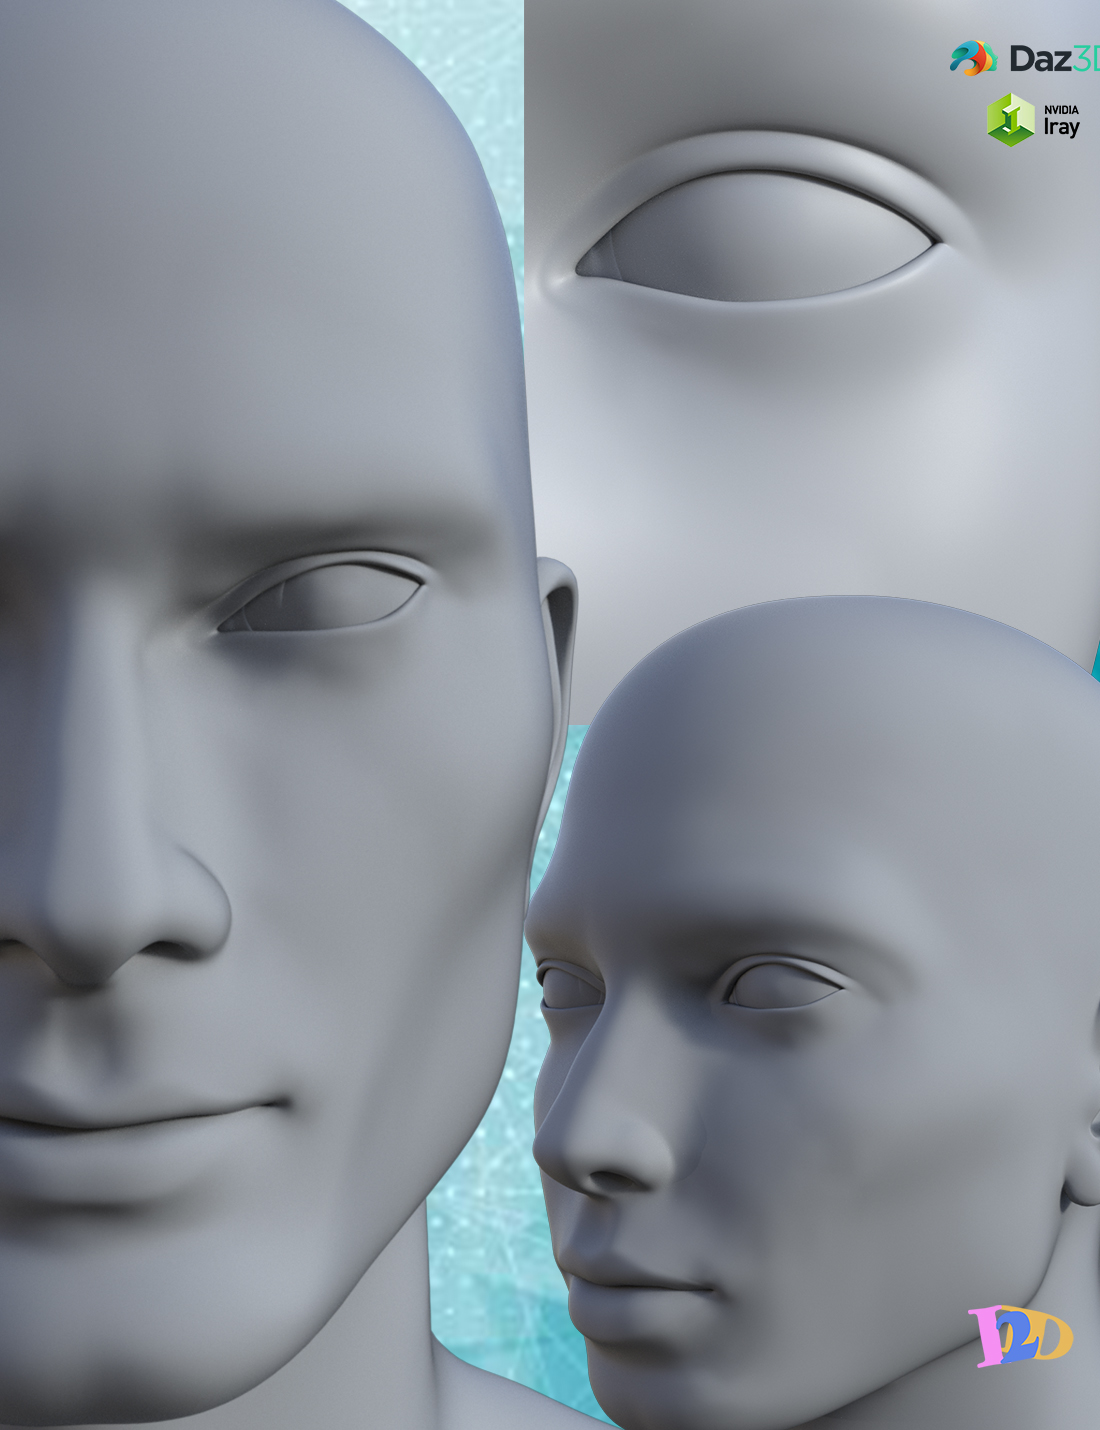 Real Head Morphs for Genesis 8 Male and Genesis 8.1 Males by: I2D, 3D Models by Daz 3D